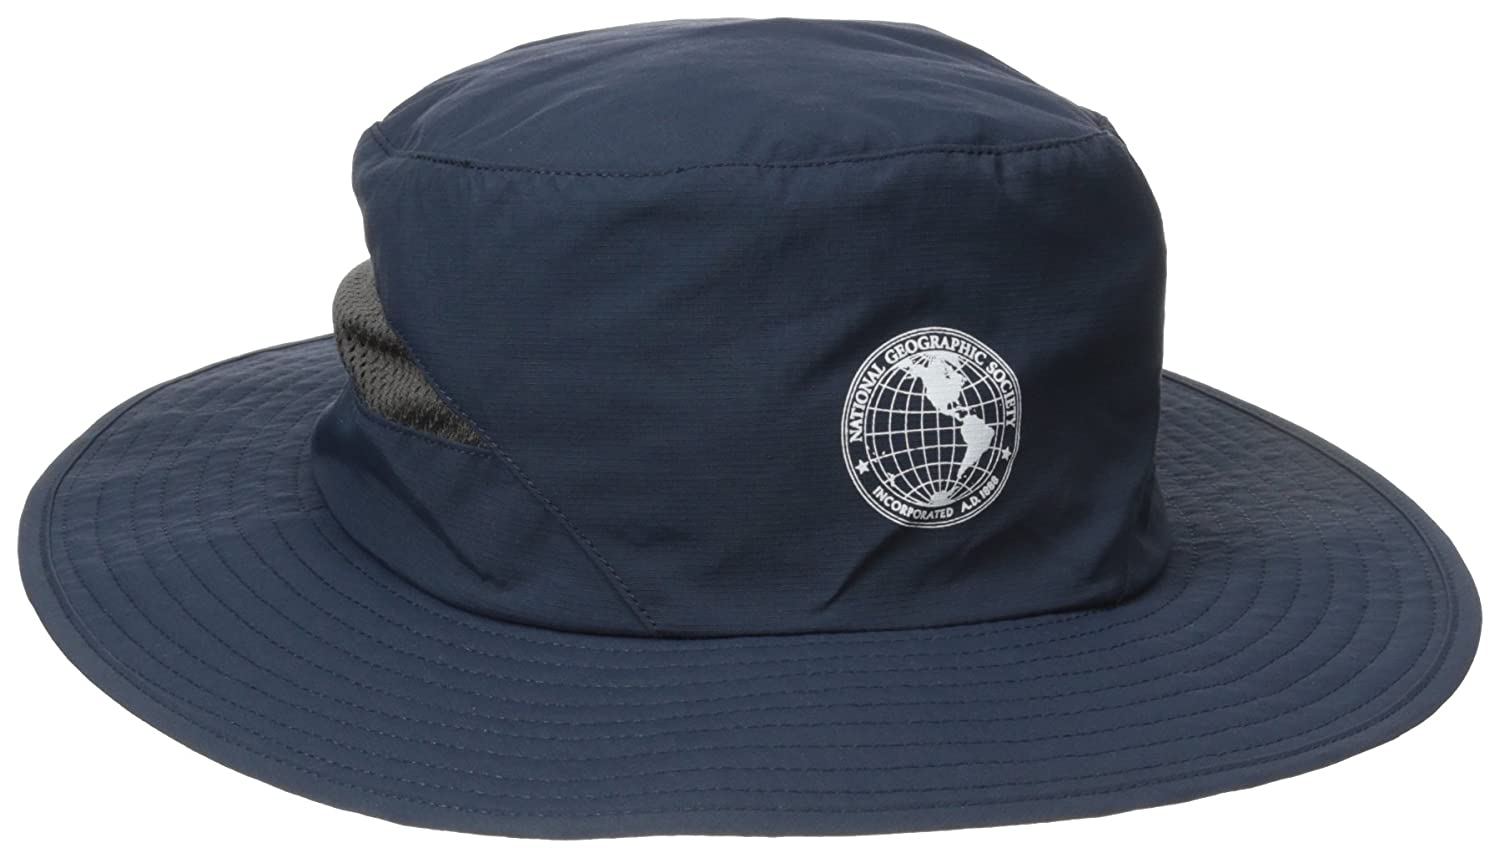 NATIONAL GEOGRAPHIC Mens Booney Hat with Back Mesh